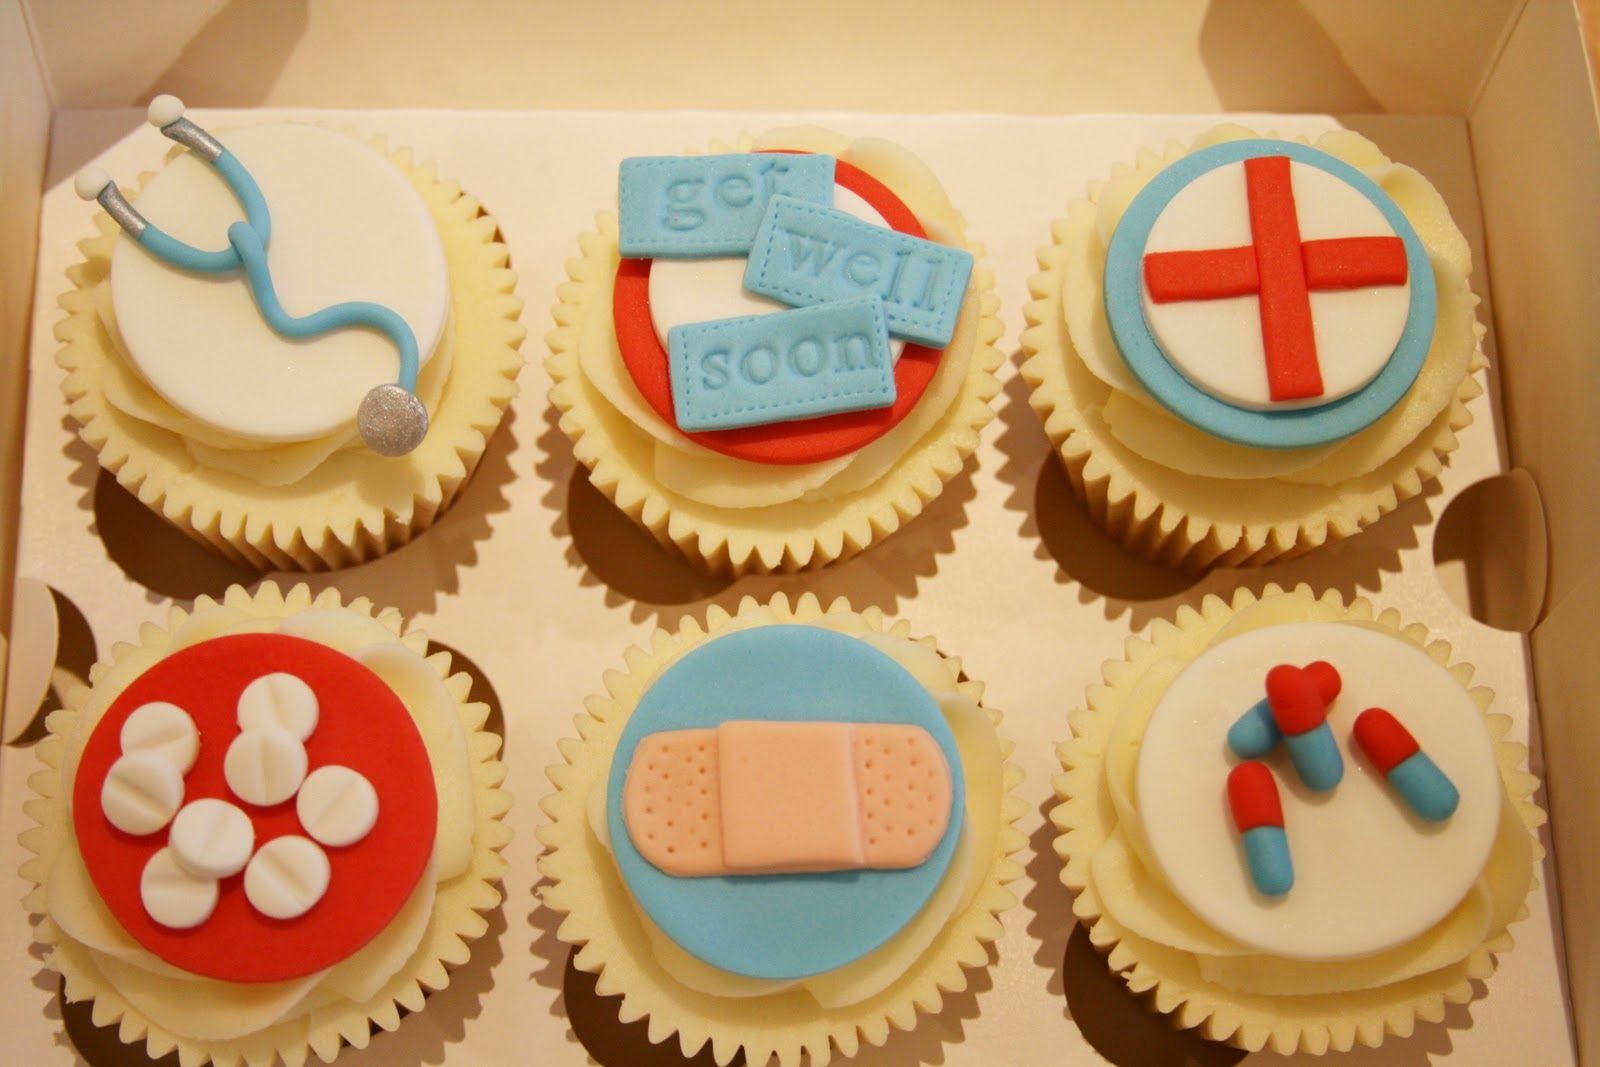 Get well soon gift adorable cupcakes get well gifts